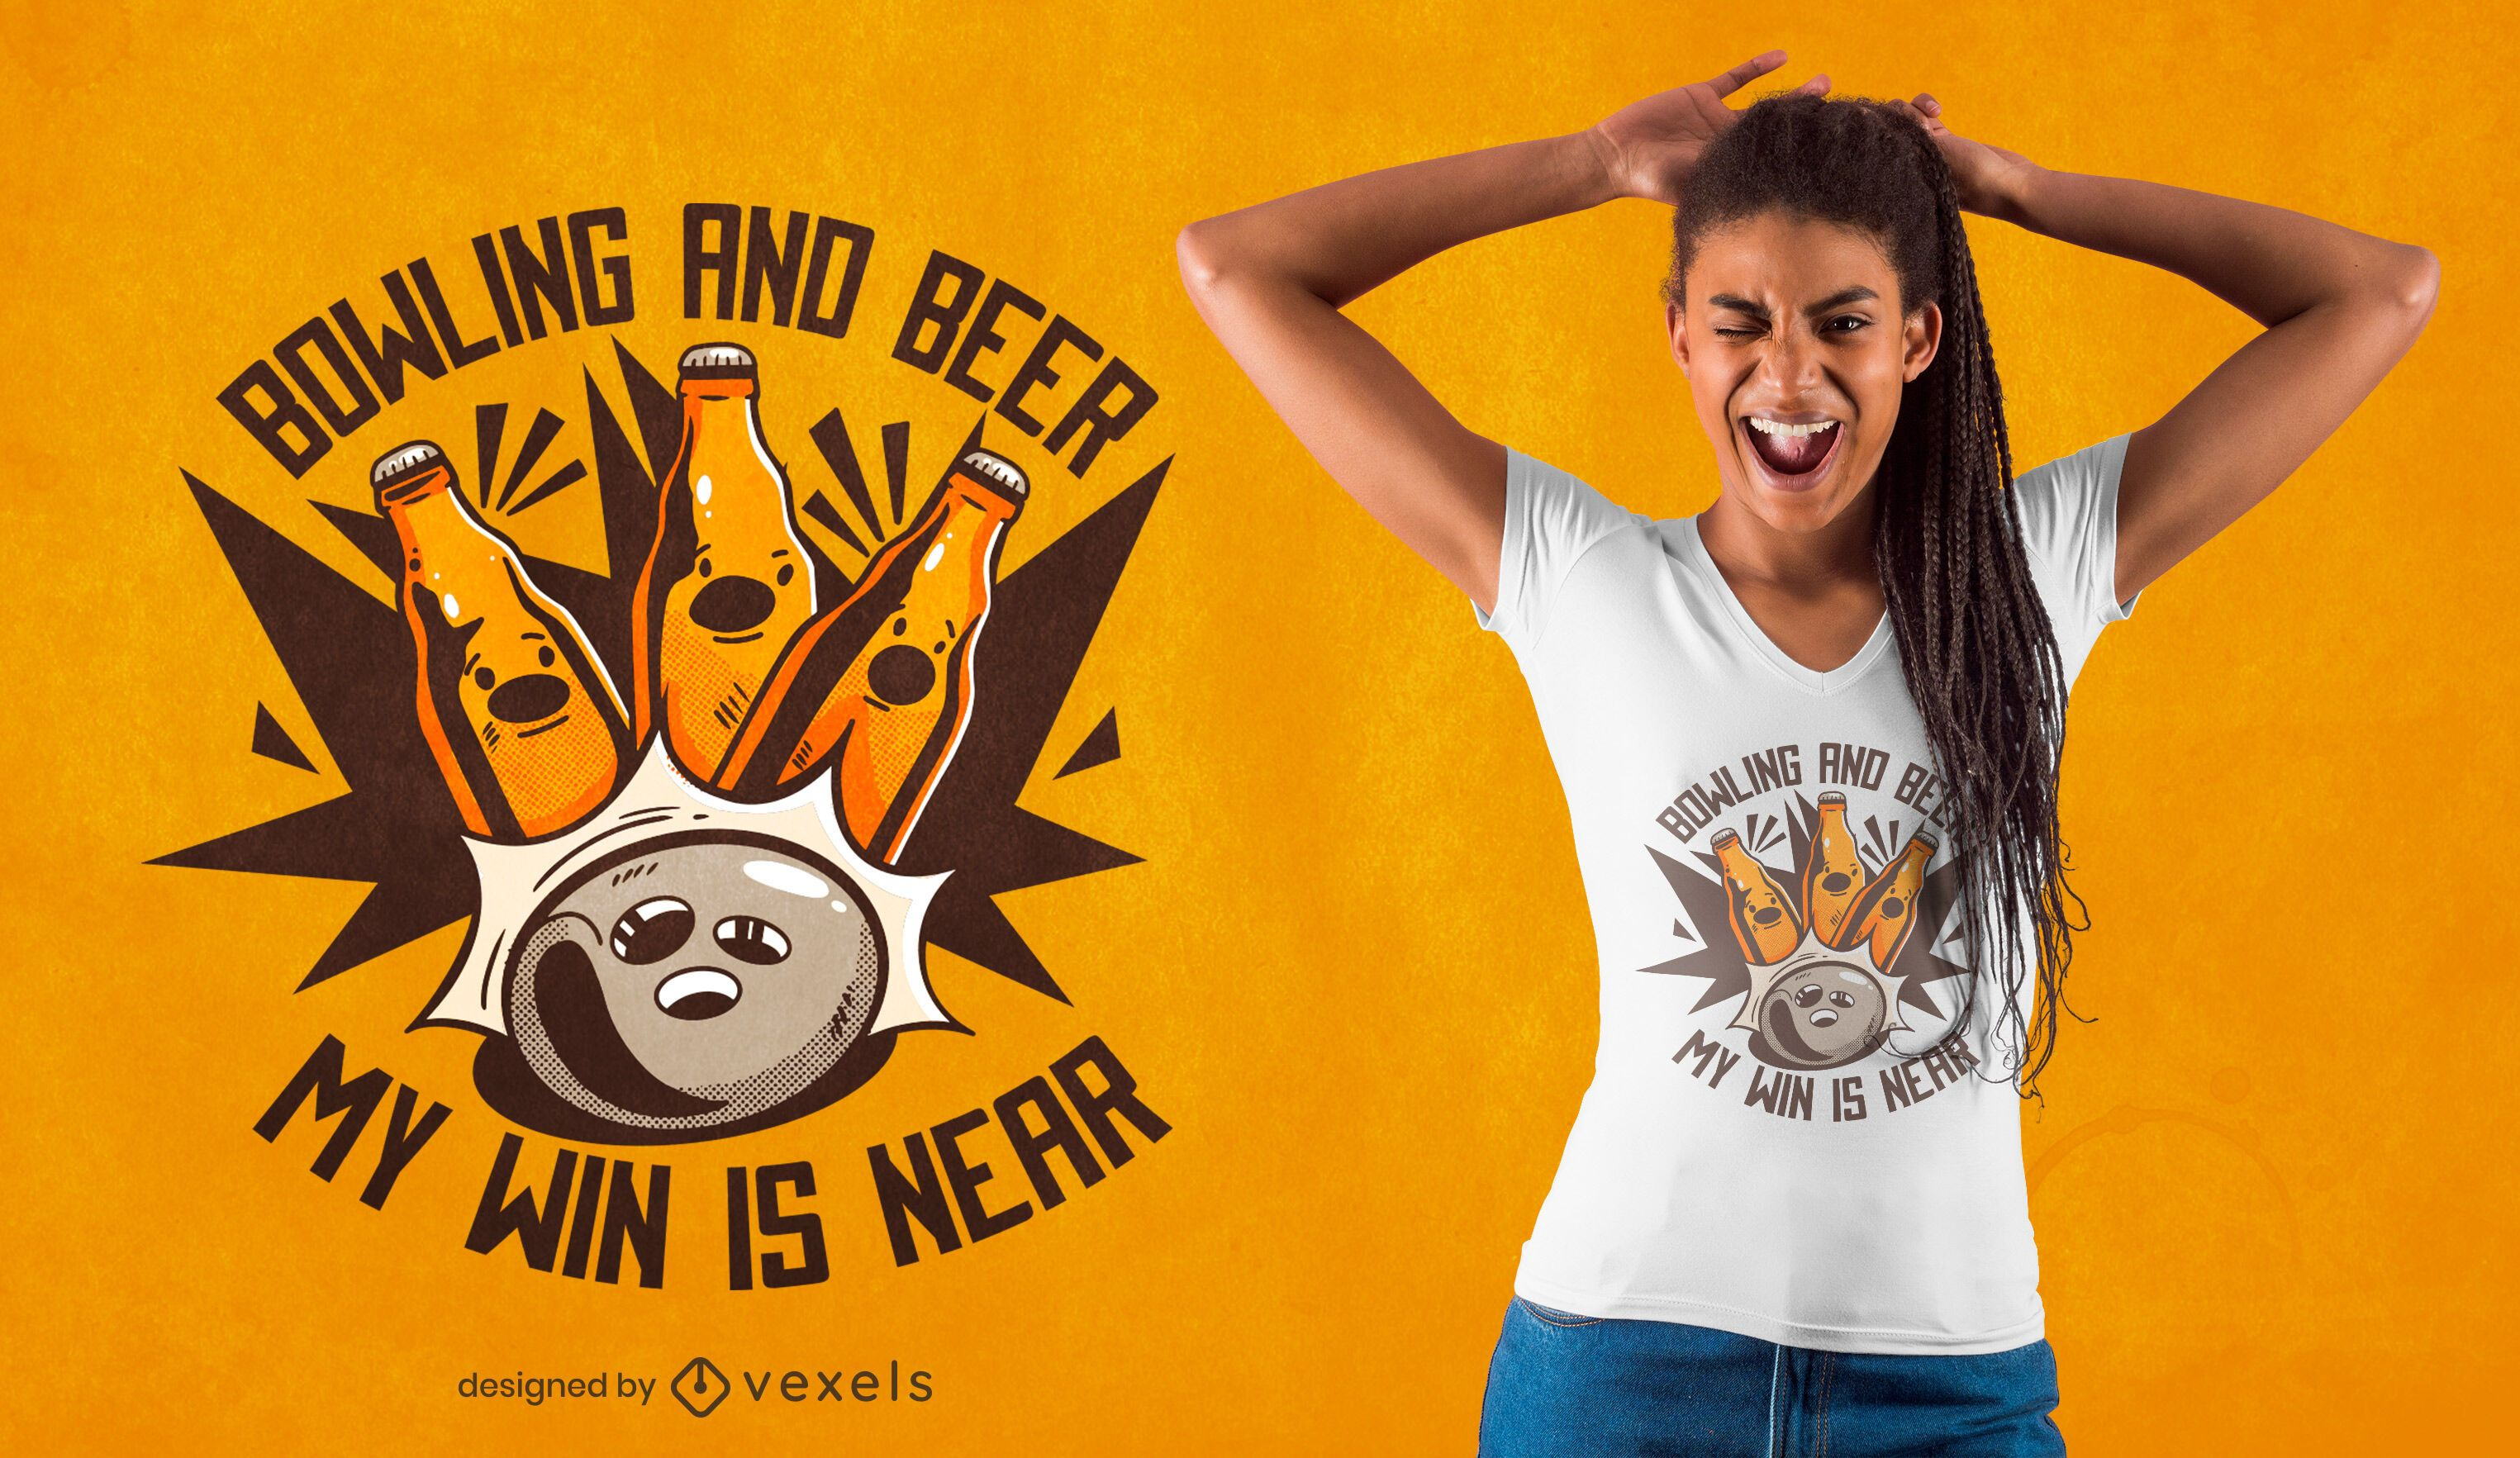 Bowling and beer t-shirt design